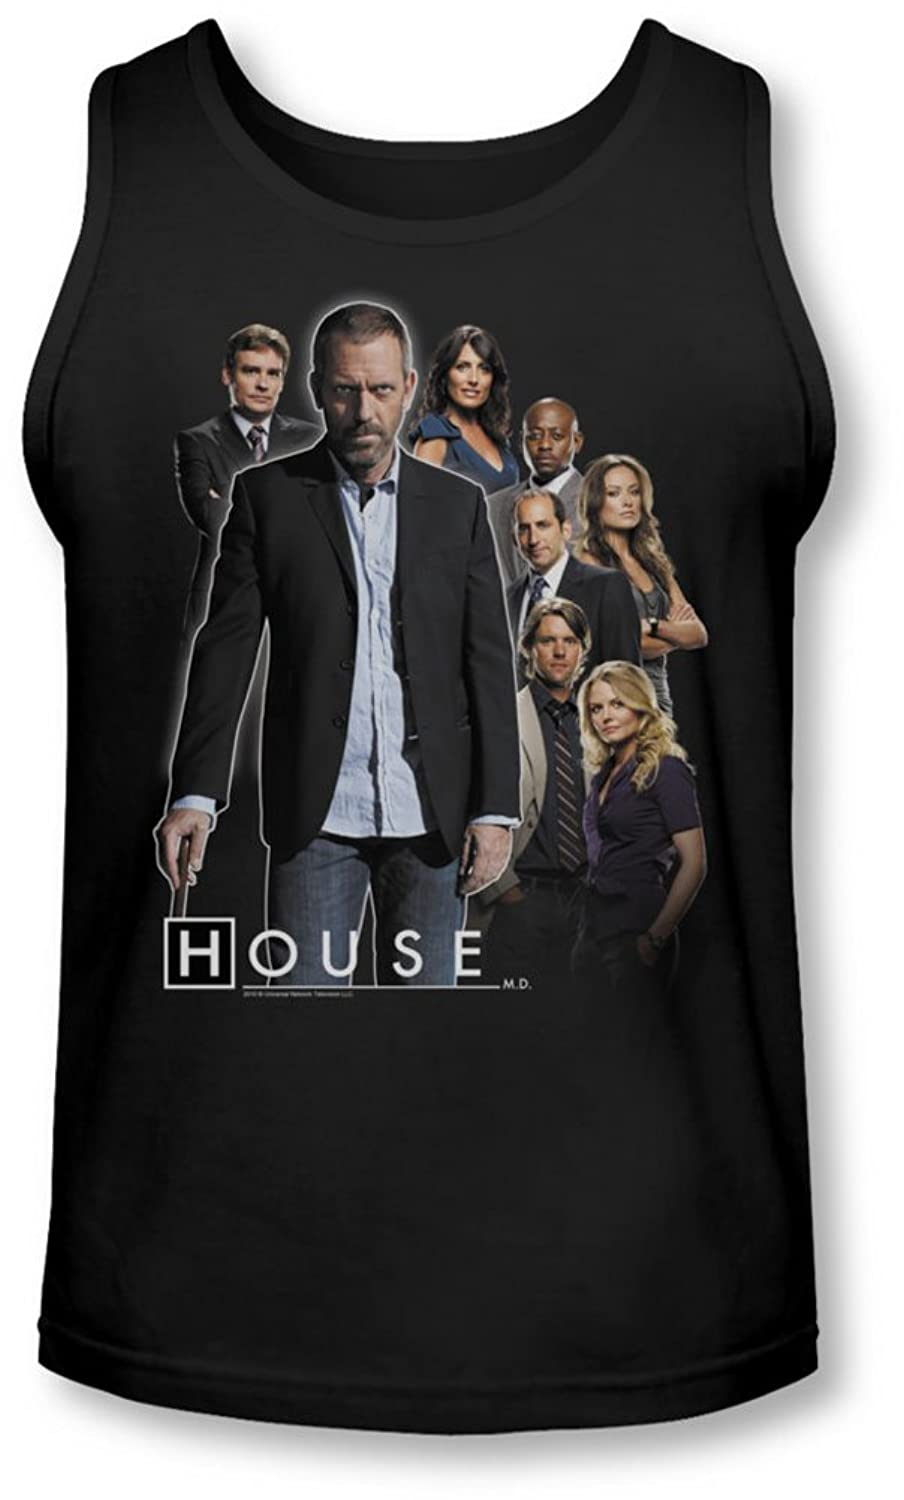 House - Mens Crew Tank-Top